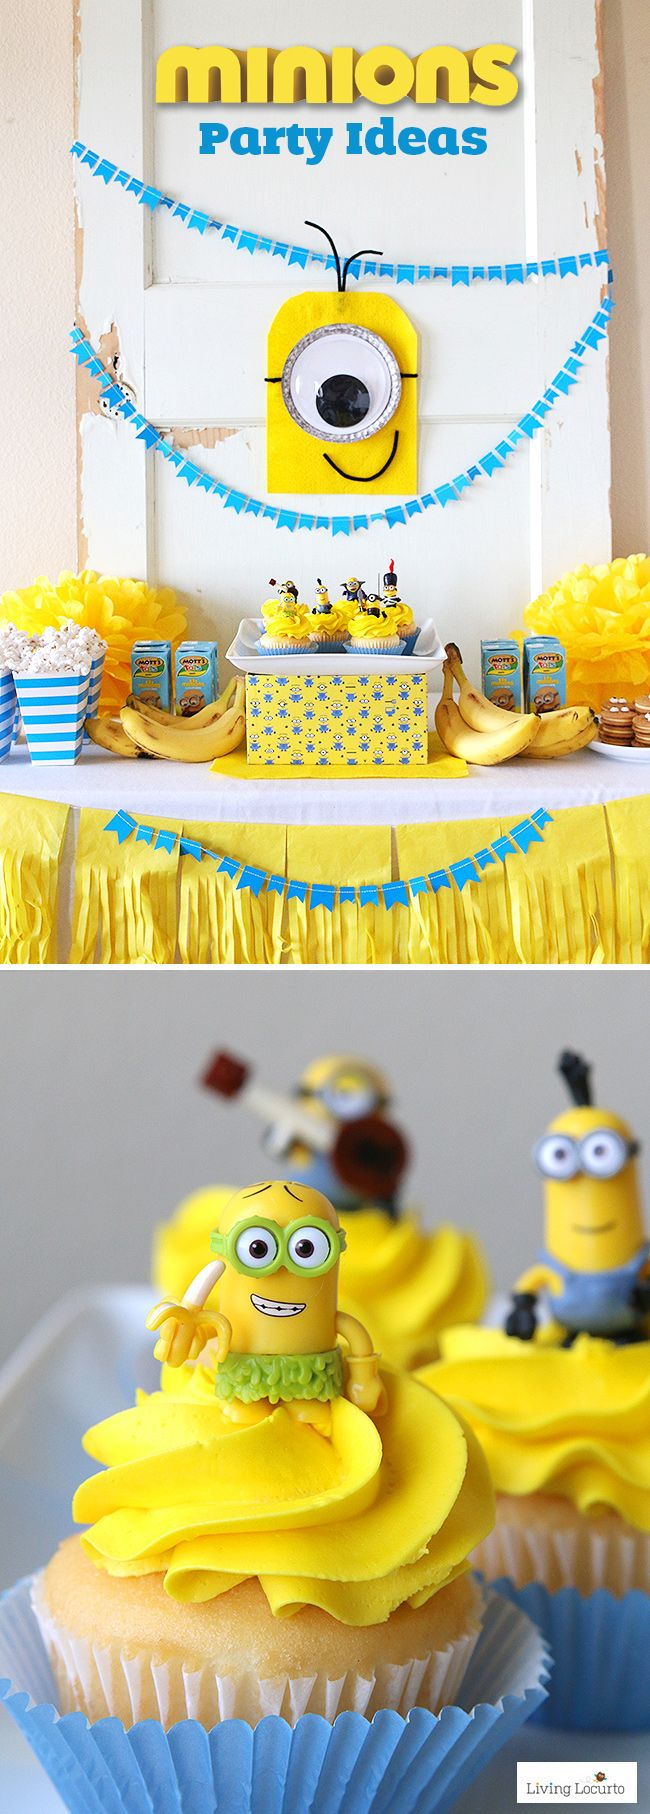 Cute Minions Party Ideas! Fun DIY ideas for a Minions Party or Despicable Me Minion Themed Birthday Party. The felt Minion is an easy craft project for kids. So adorable! by @livinglocurto